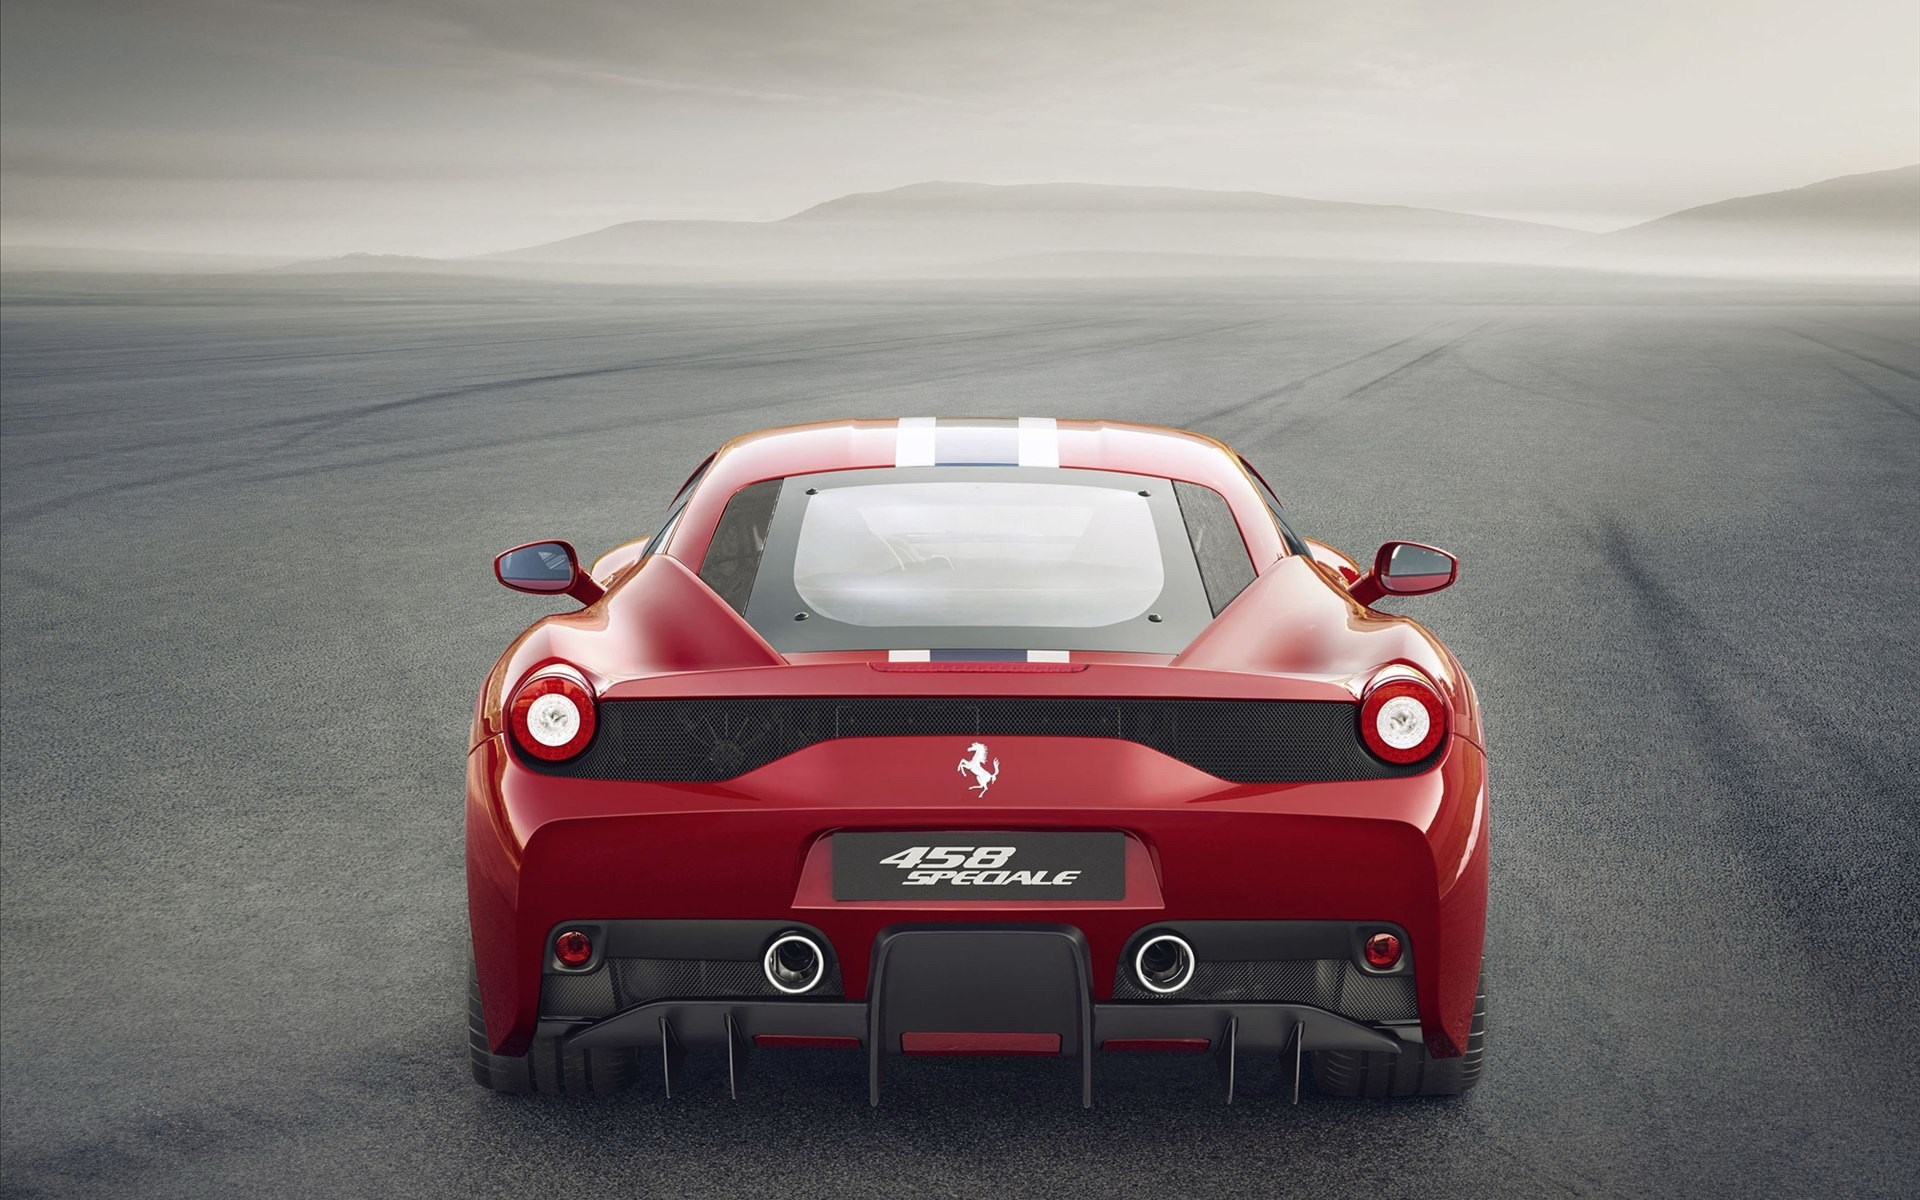 Ferrari 458 Speciale Back 2014 Wallpaper 1920x1200 16744